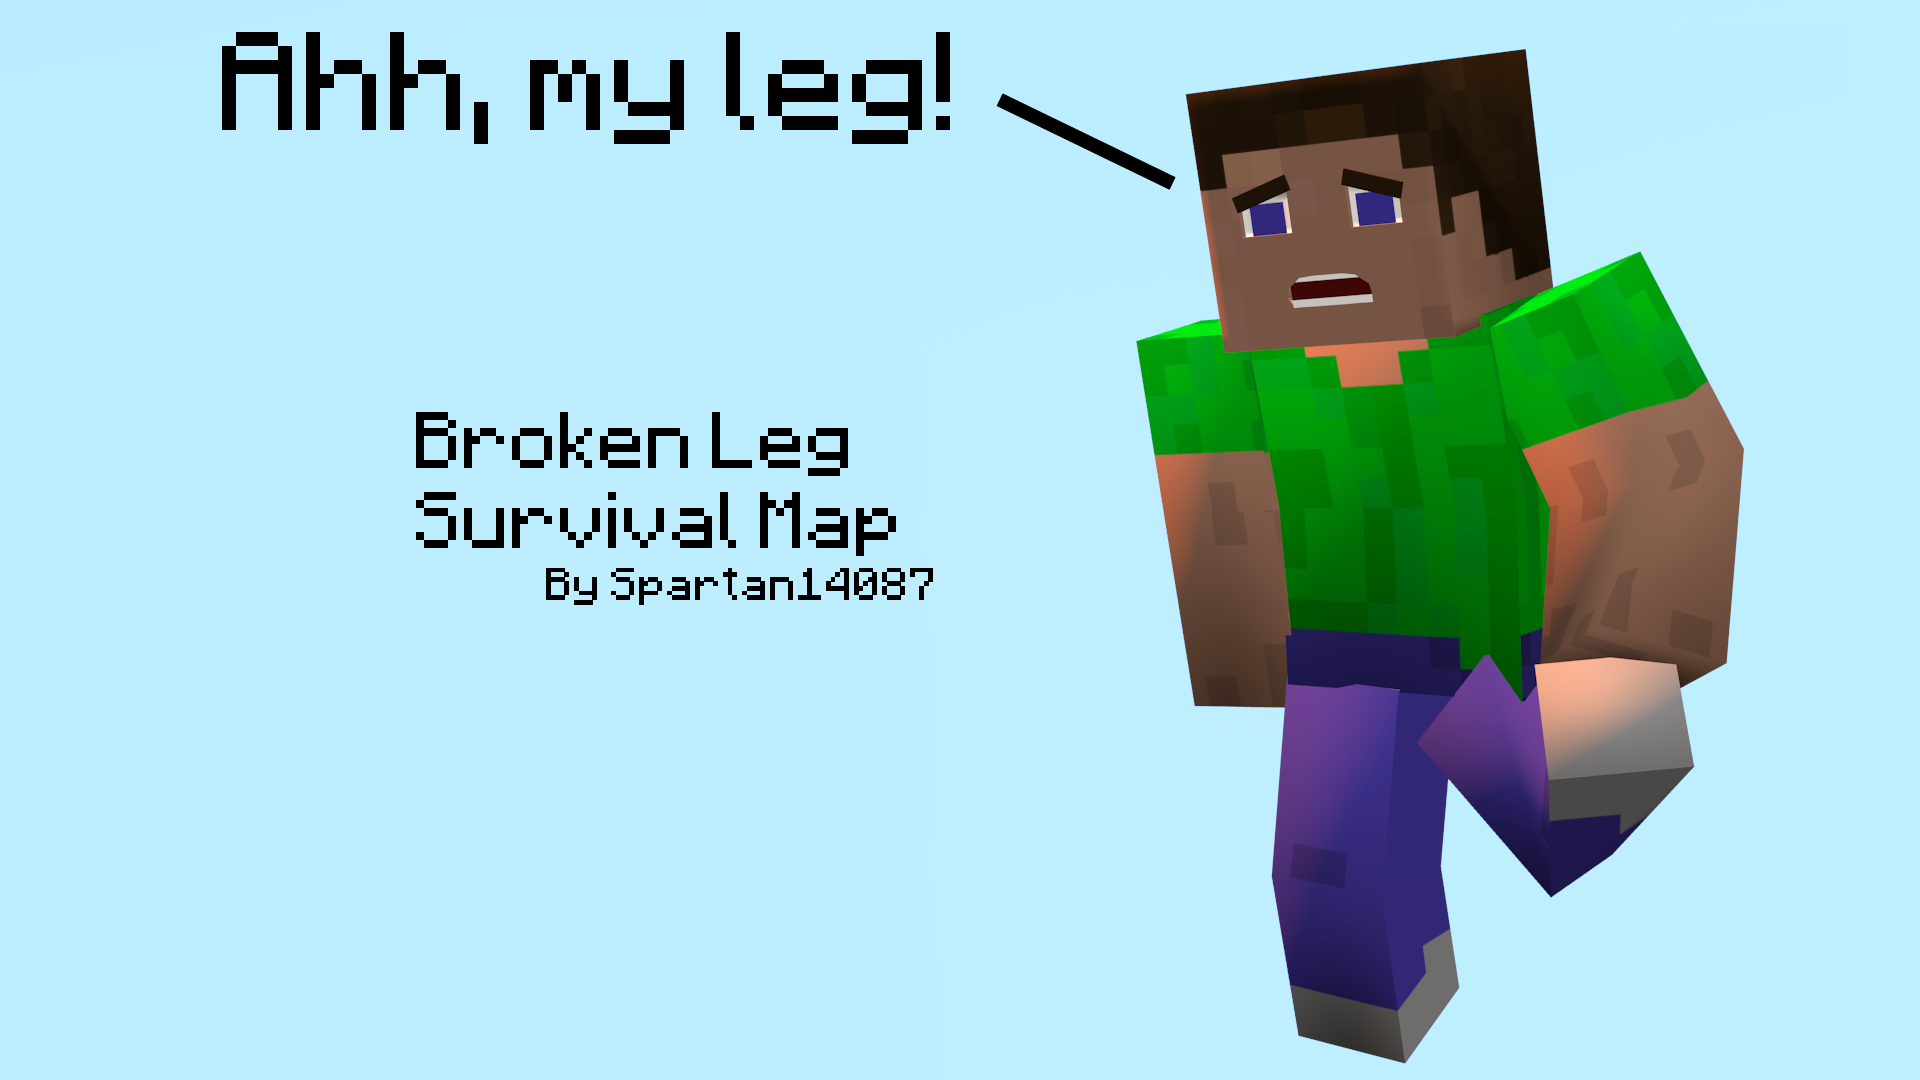 Ladies and gentlemen, I present to you, The Broken Leg Survival Map! - Broken Leg PNG HD